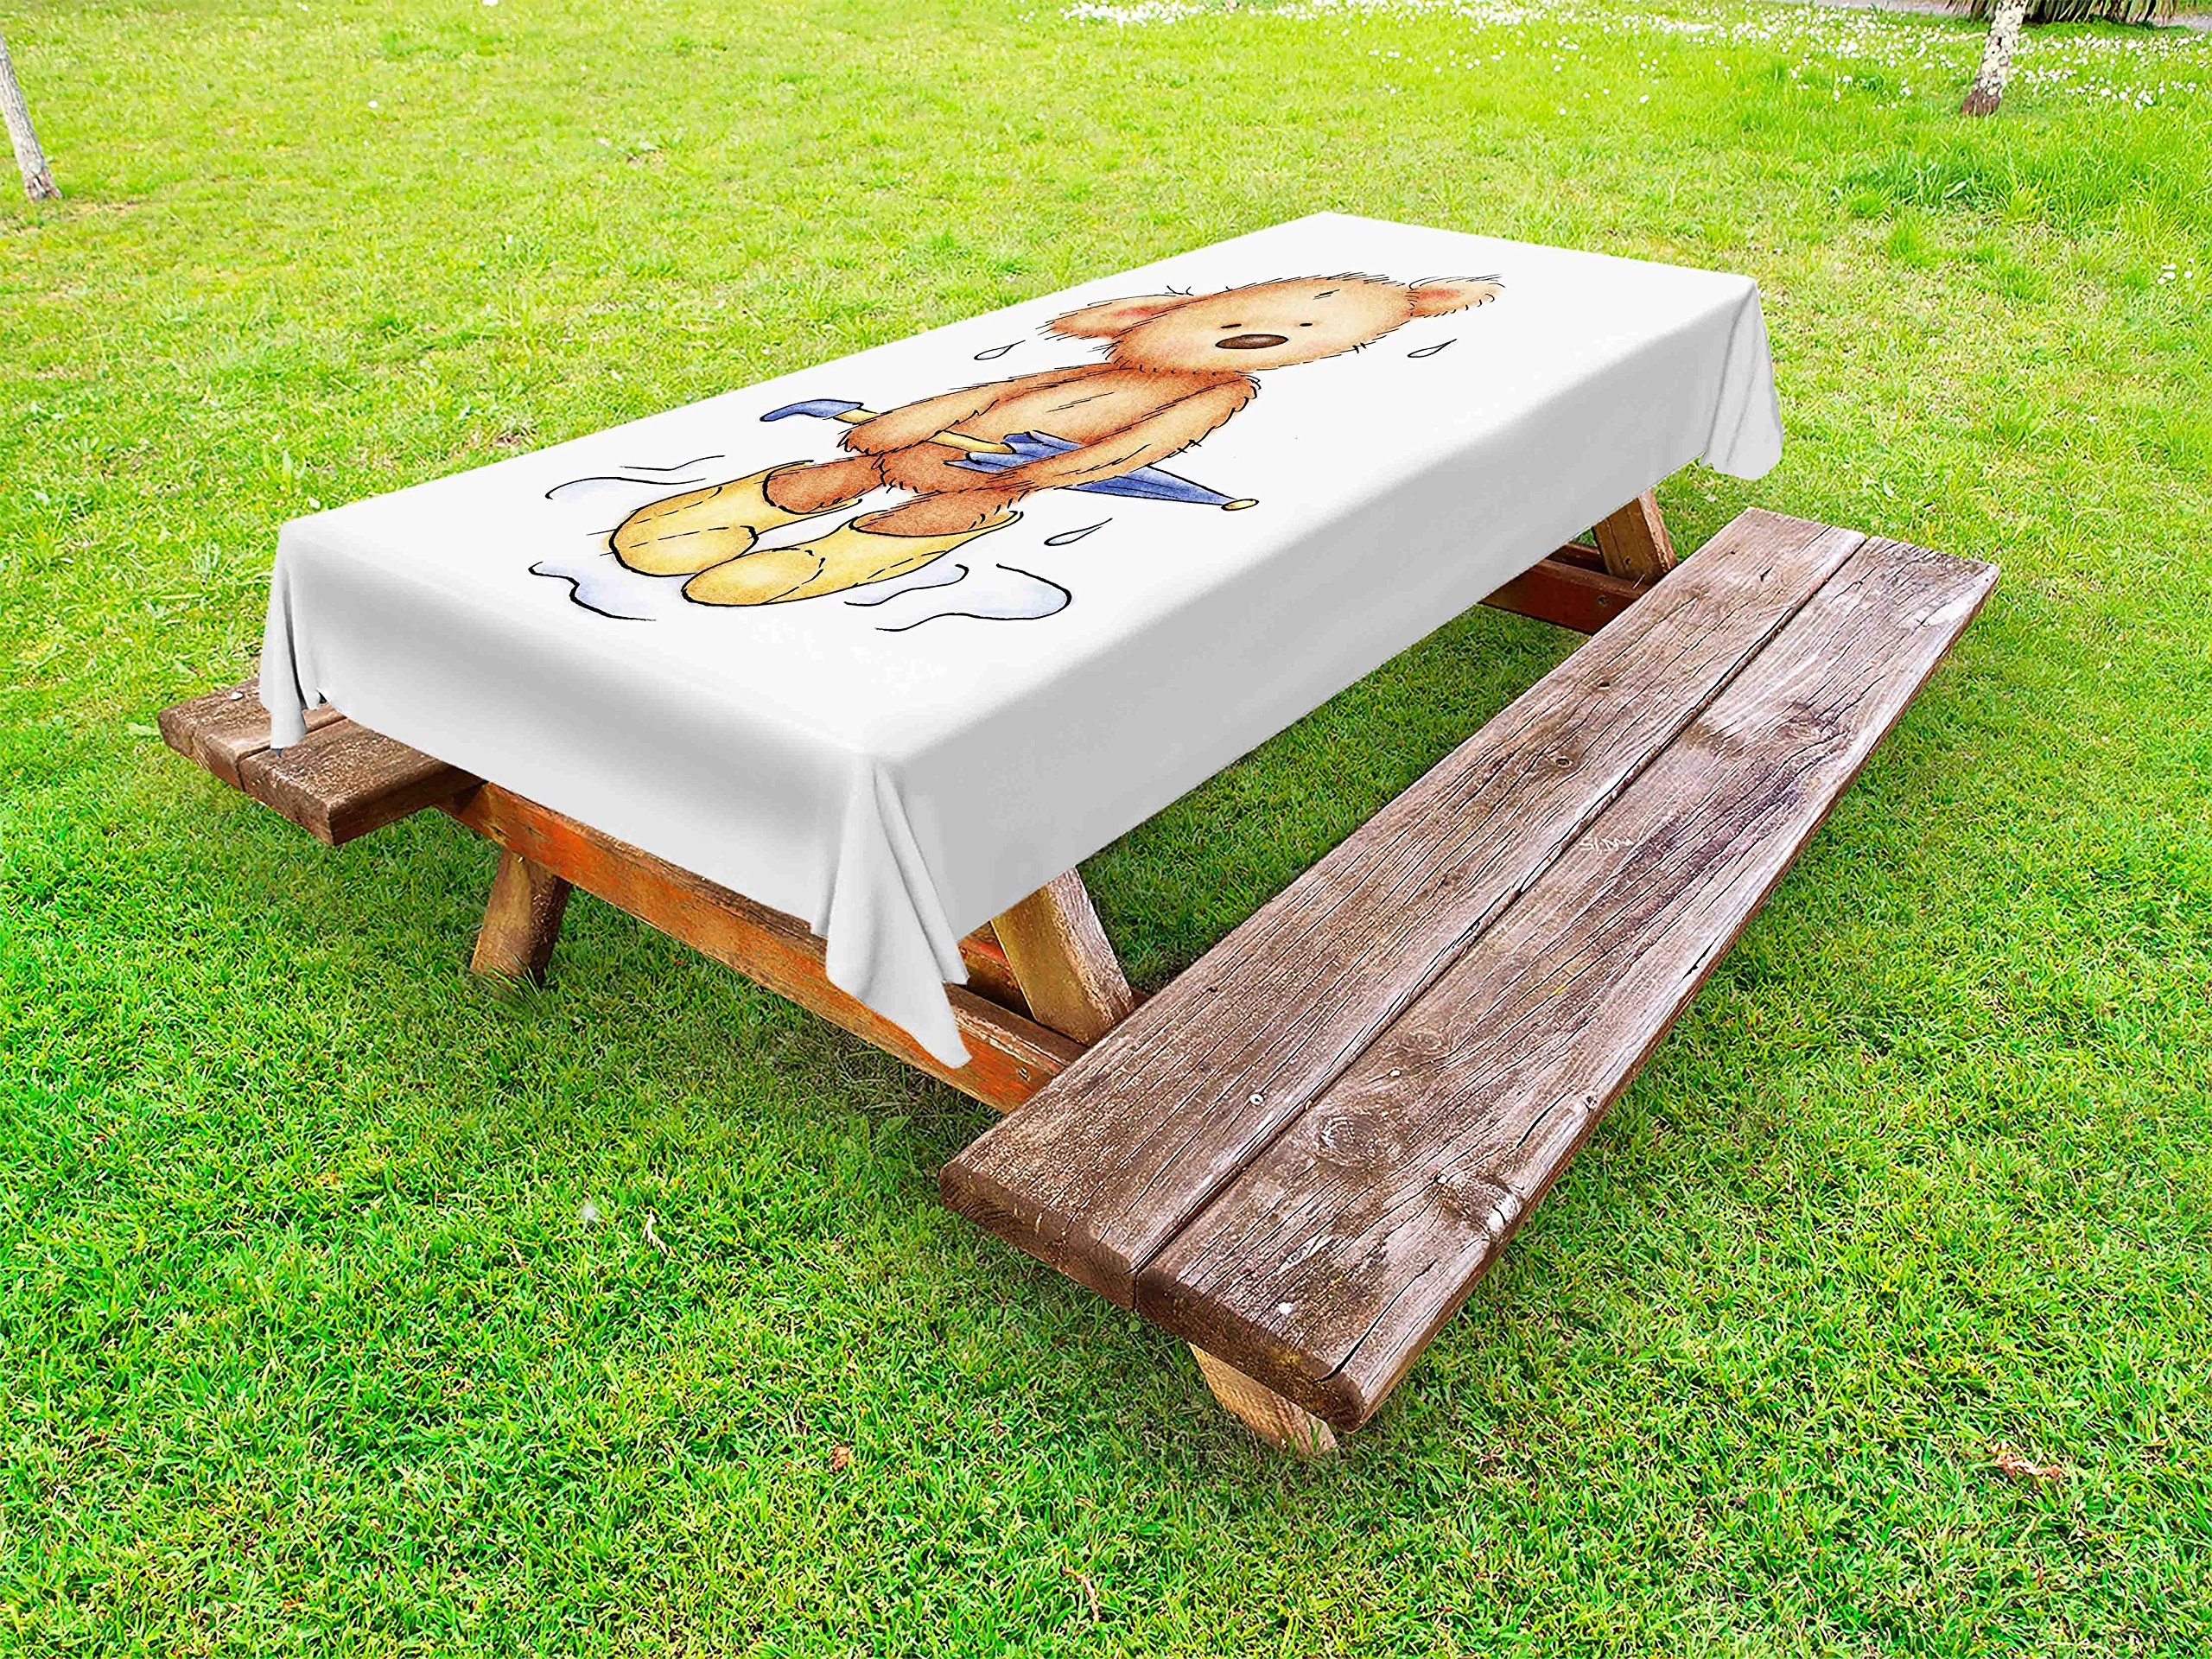 Ambesonne Bear Outdoor Tablecloth, Teddy Bear Caught up in Rain with Rubber Boots Holding an Umbrella Cartoon, Decorative Washable Picnic Table Cloth, 58 X 120 Inches, Sand Brown Yellow Blue